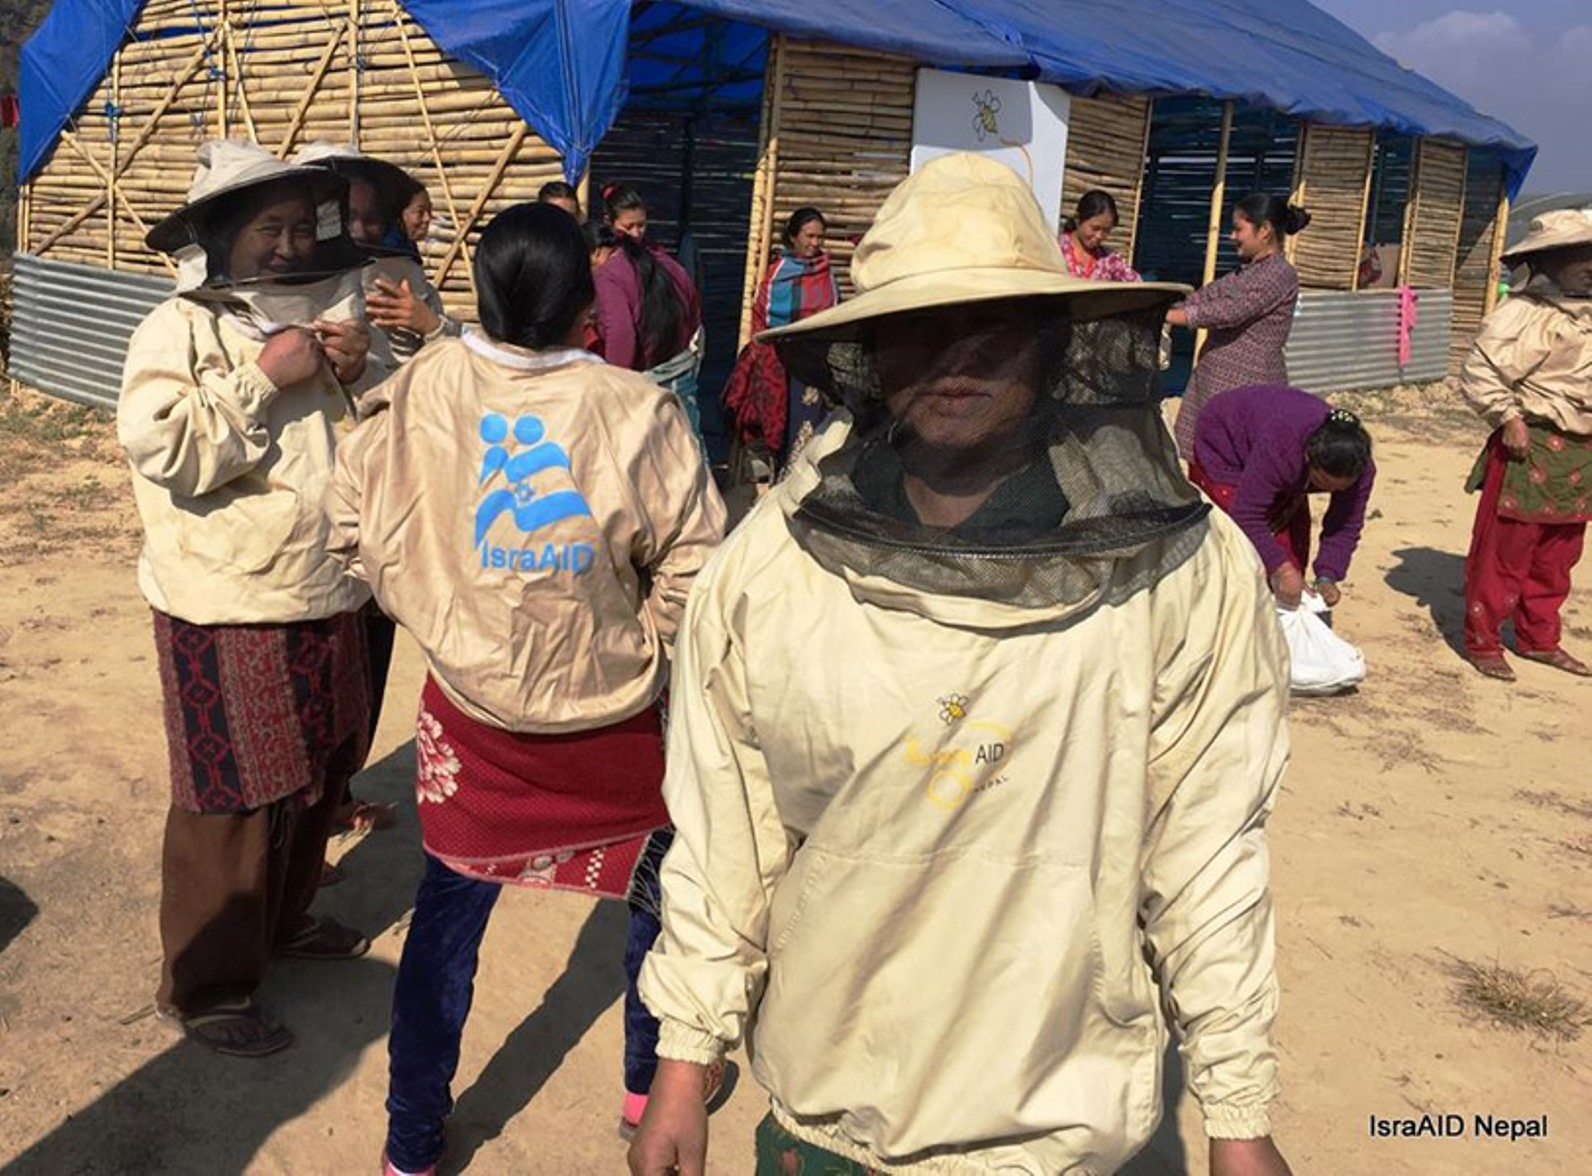 IsraAID's HoneyAID project equips and trains Nepalese women to be beekeepers. Photo courtesy of IsraAID Nepal